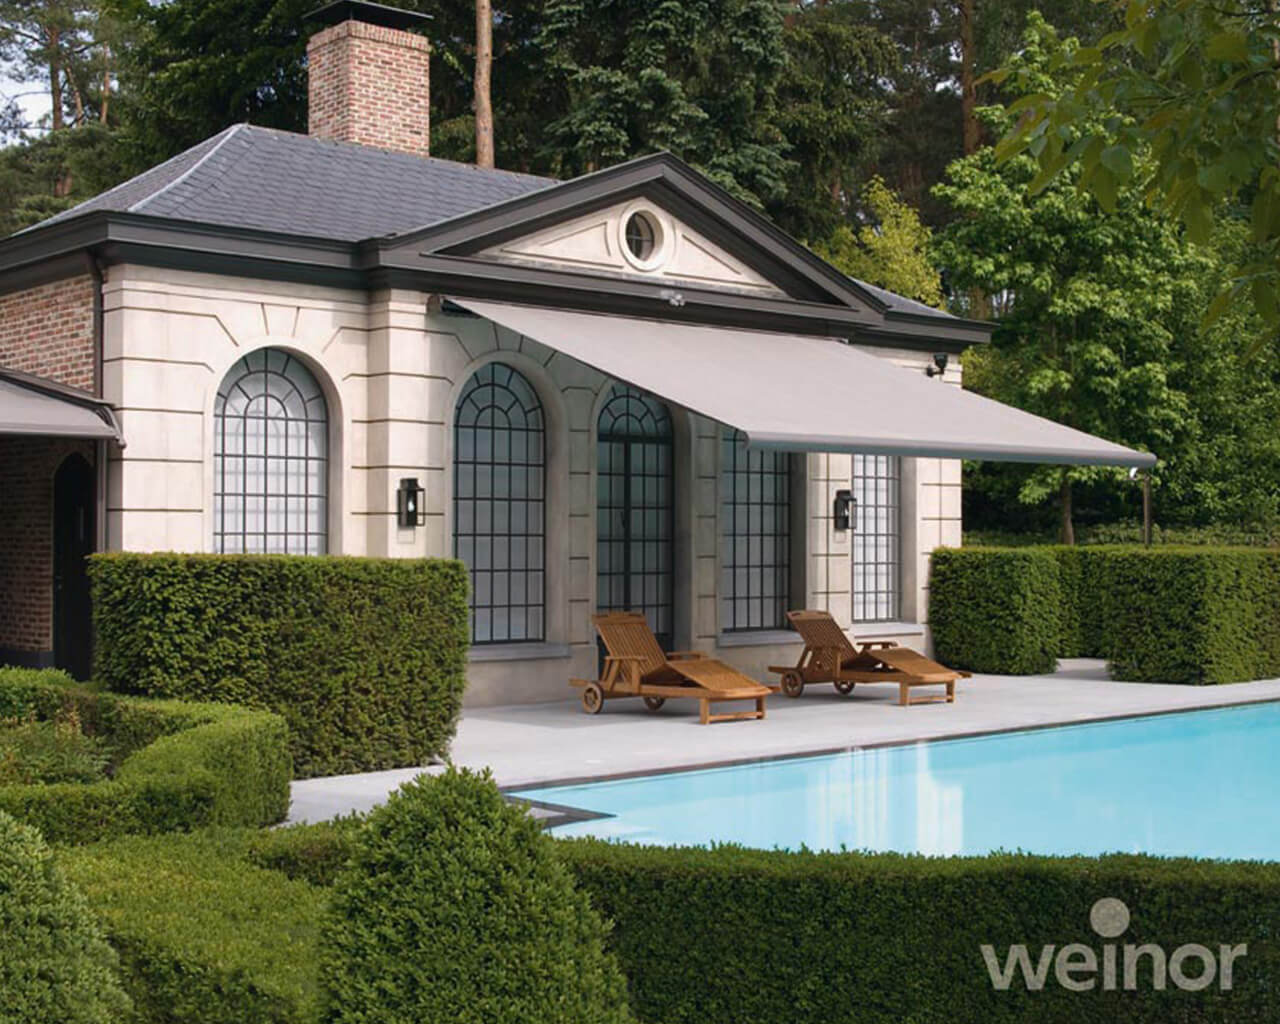 Awning Opal design II on a house with a pool